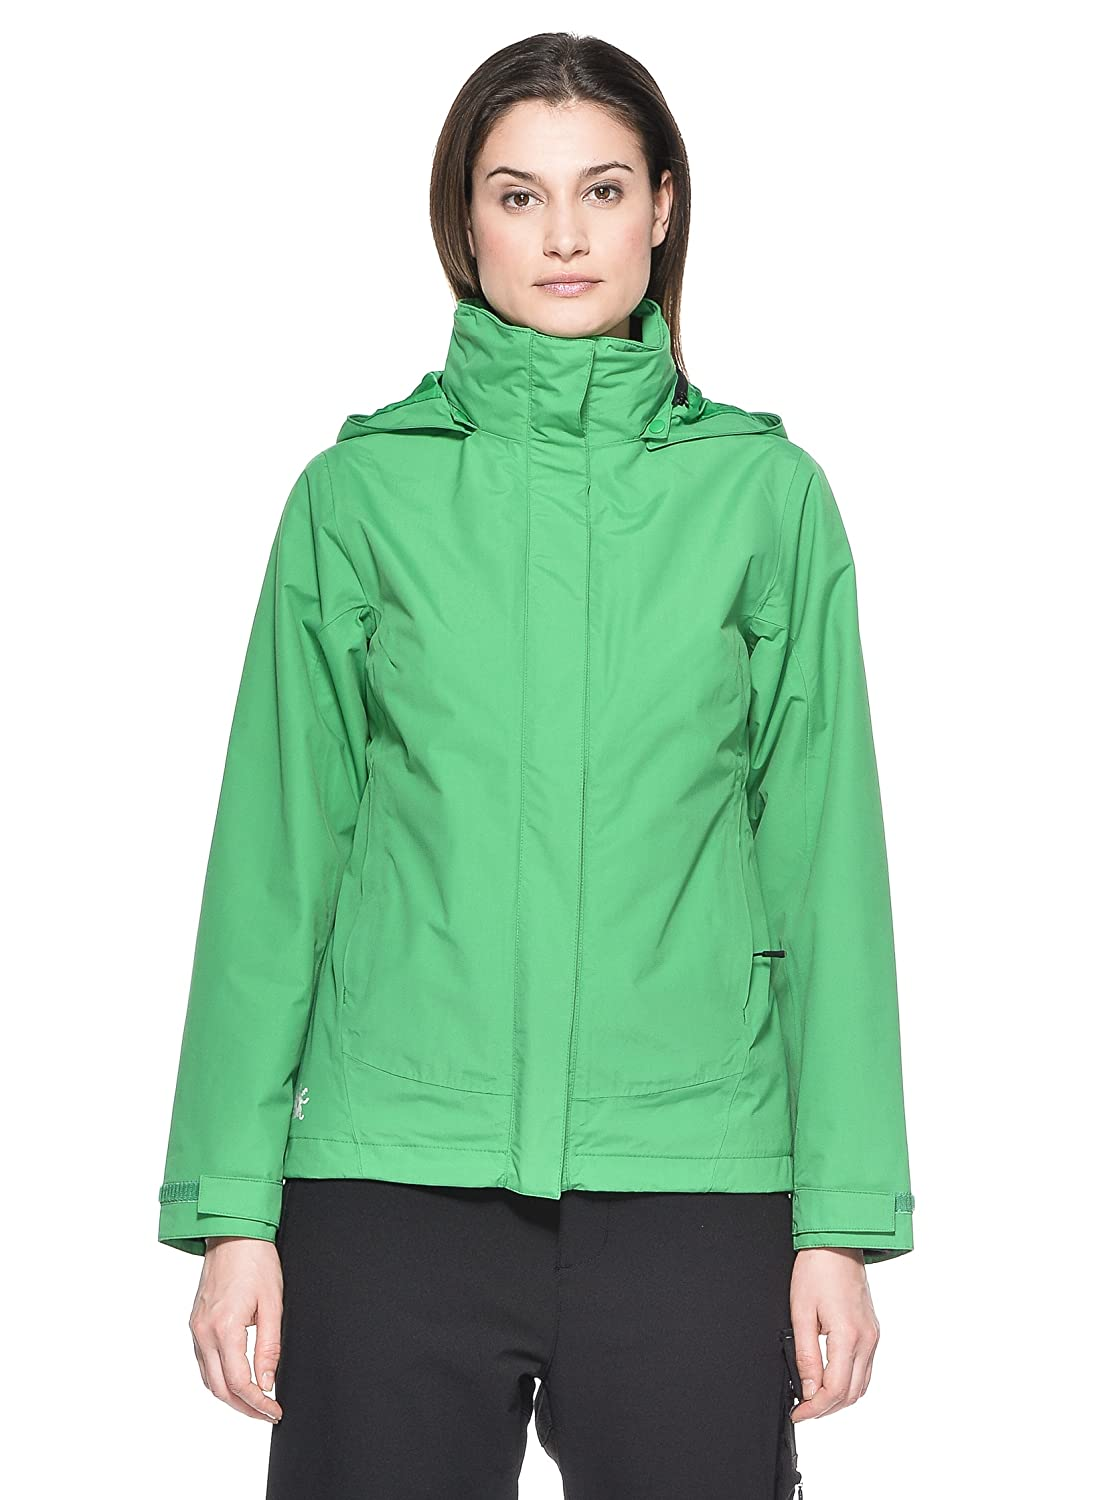 SALEWA PATSY POWERTEX Gr. 38 3in1 Damenjacke mit POLARLITE Fleece Innenjacke